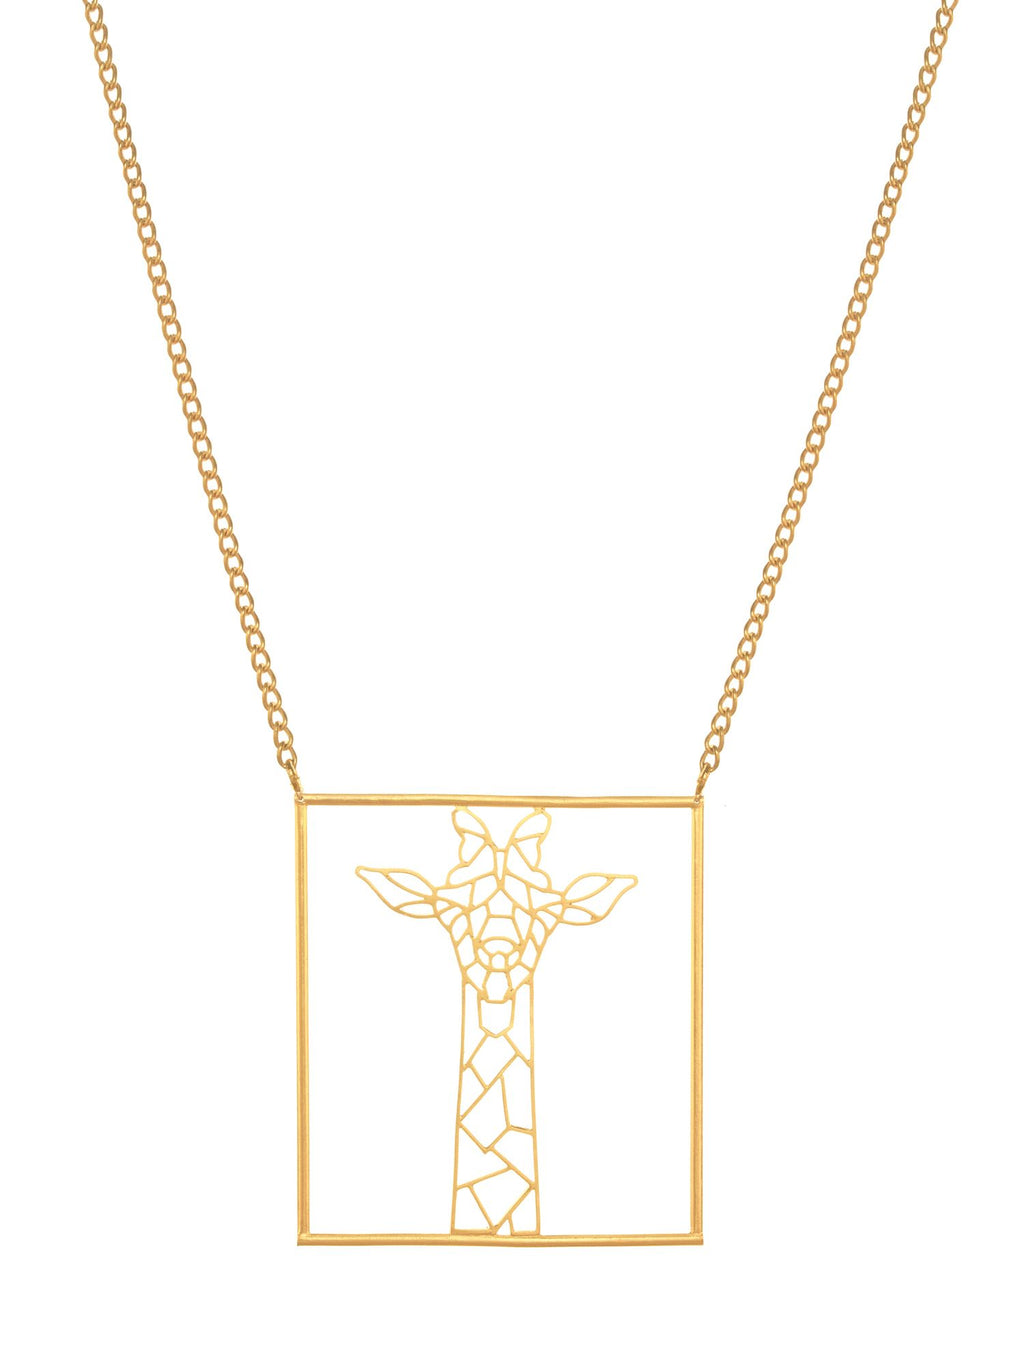 Girafometric Brass Metal Necklace - Riviera Closet